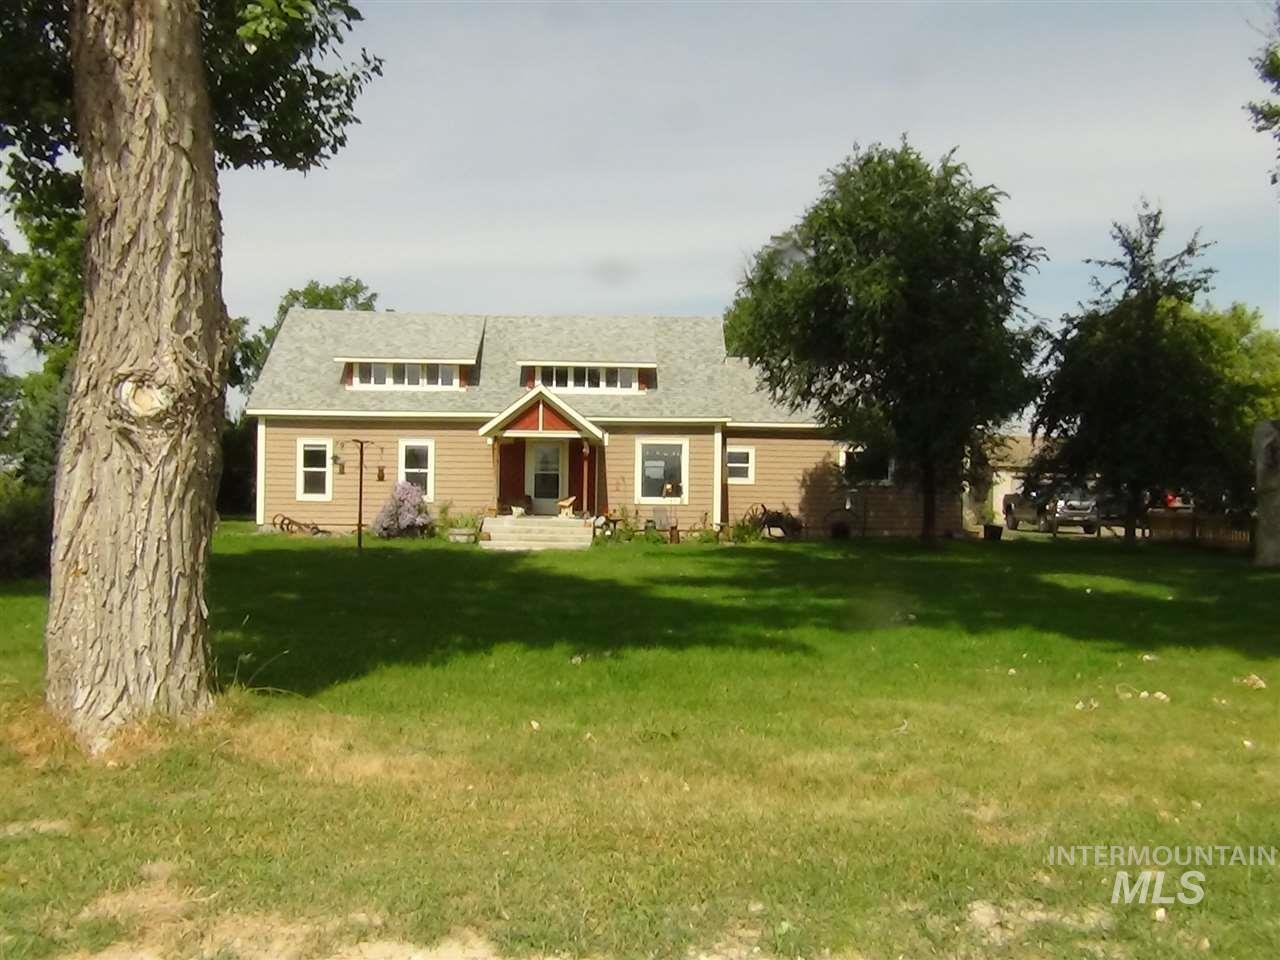 Farm for Sale at 2366 E 1900 N 2366 E 1900 N Hollister, Idaho 83301